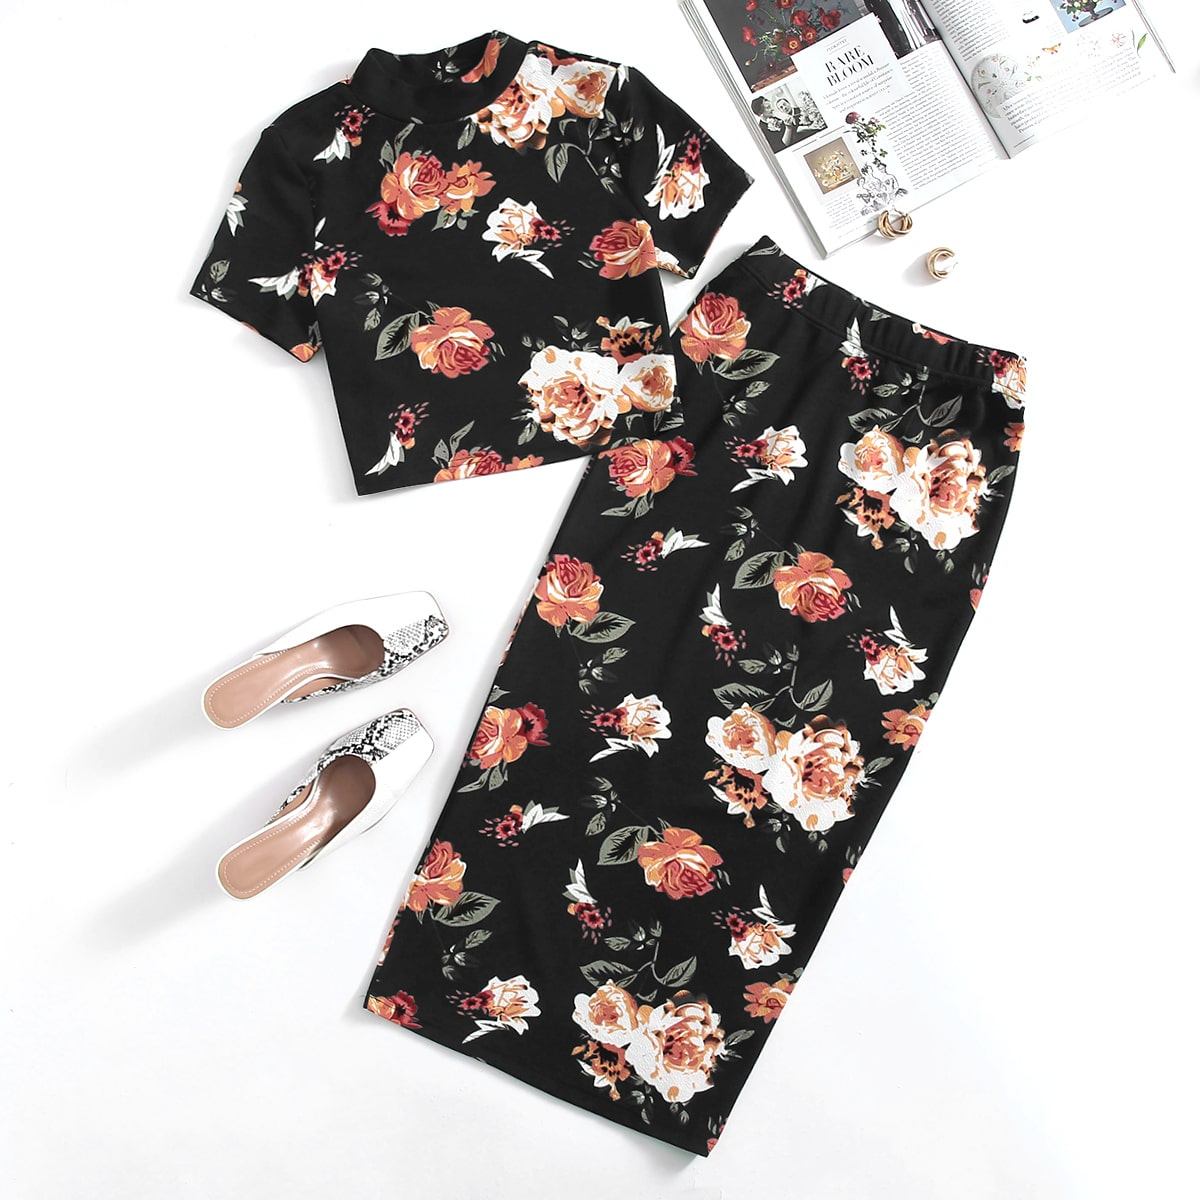 Mock-Neck Floral Top & Skirt Set, SHEIN  - buy with discount